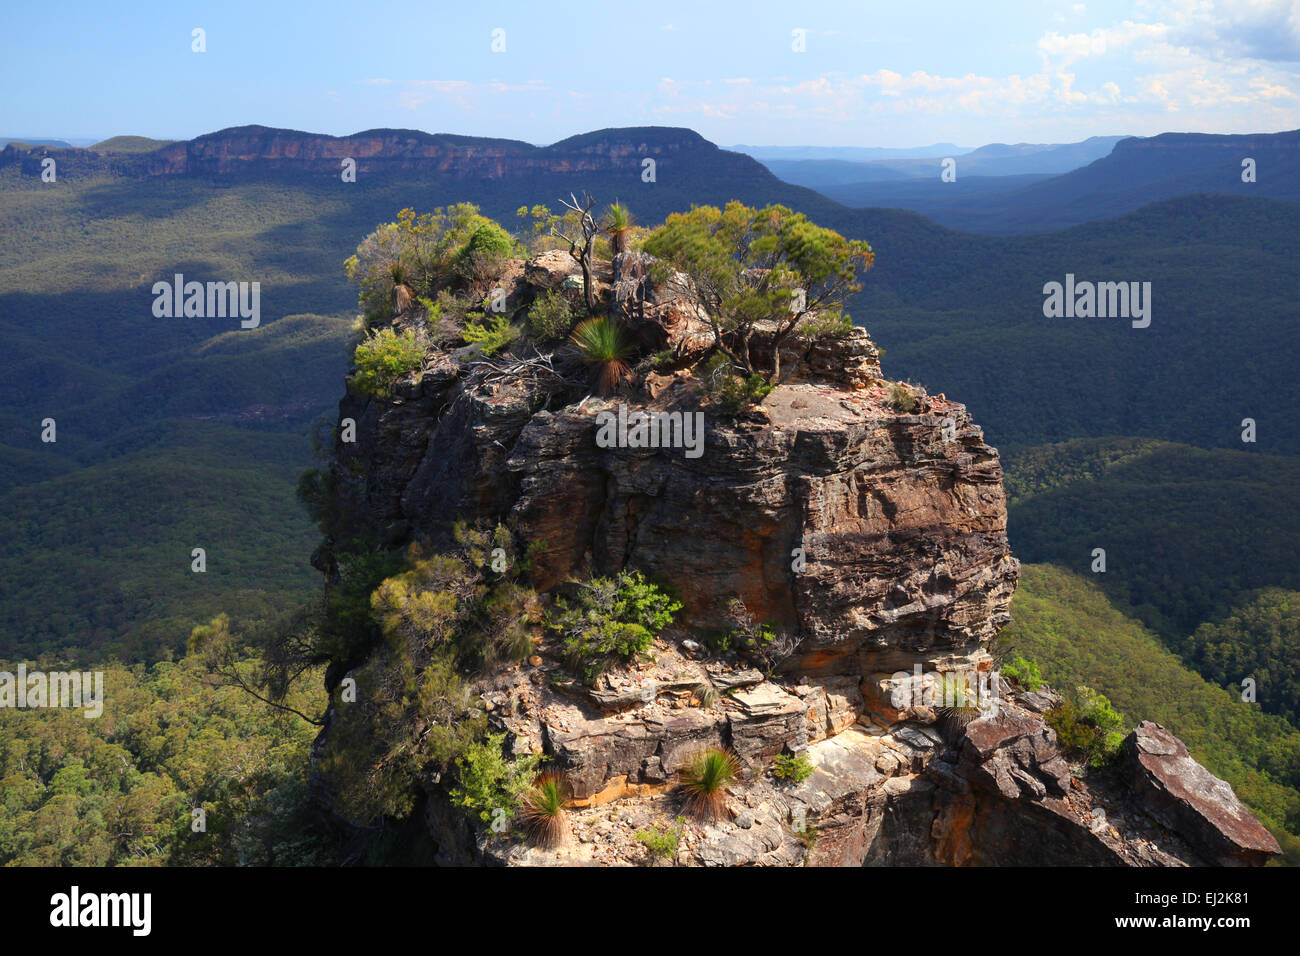 The Blue Mountains in New South wales, Australia - Stock Image